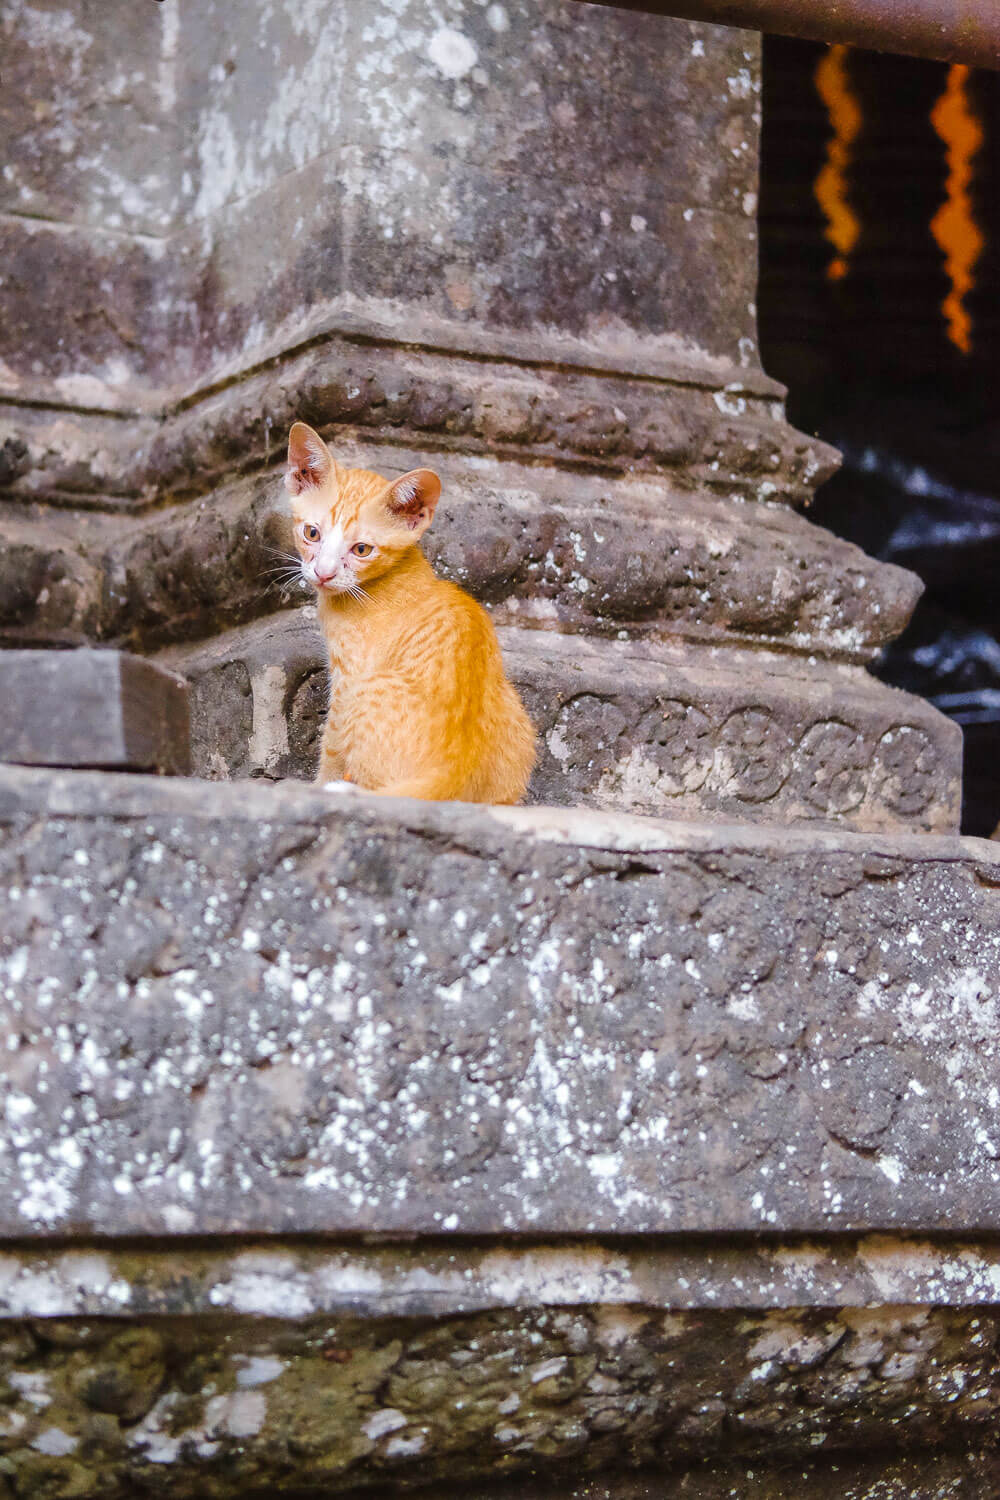 A kitten roaming through the temple of Angkor Wat.     #siemreap #angkorwat #travelguide #siemreapitinerary #cambodia #travelphotography #landscapephotography #fujifilm #siemreapprivatetour